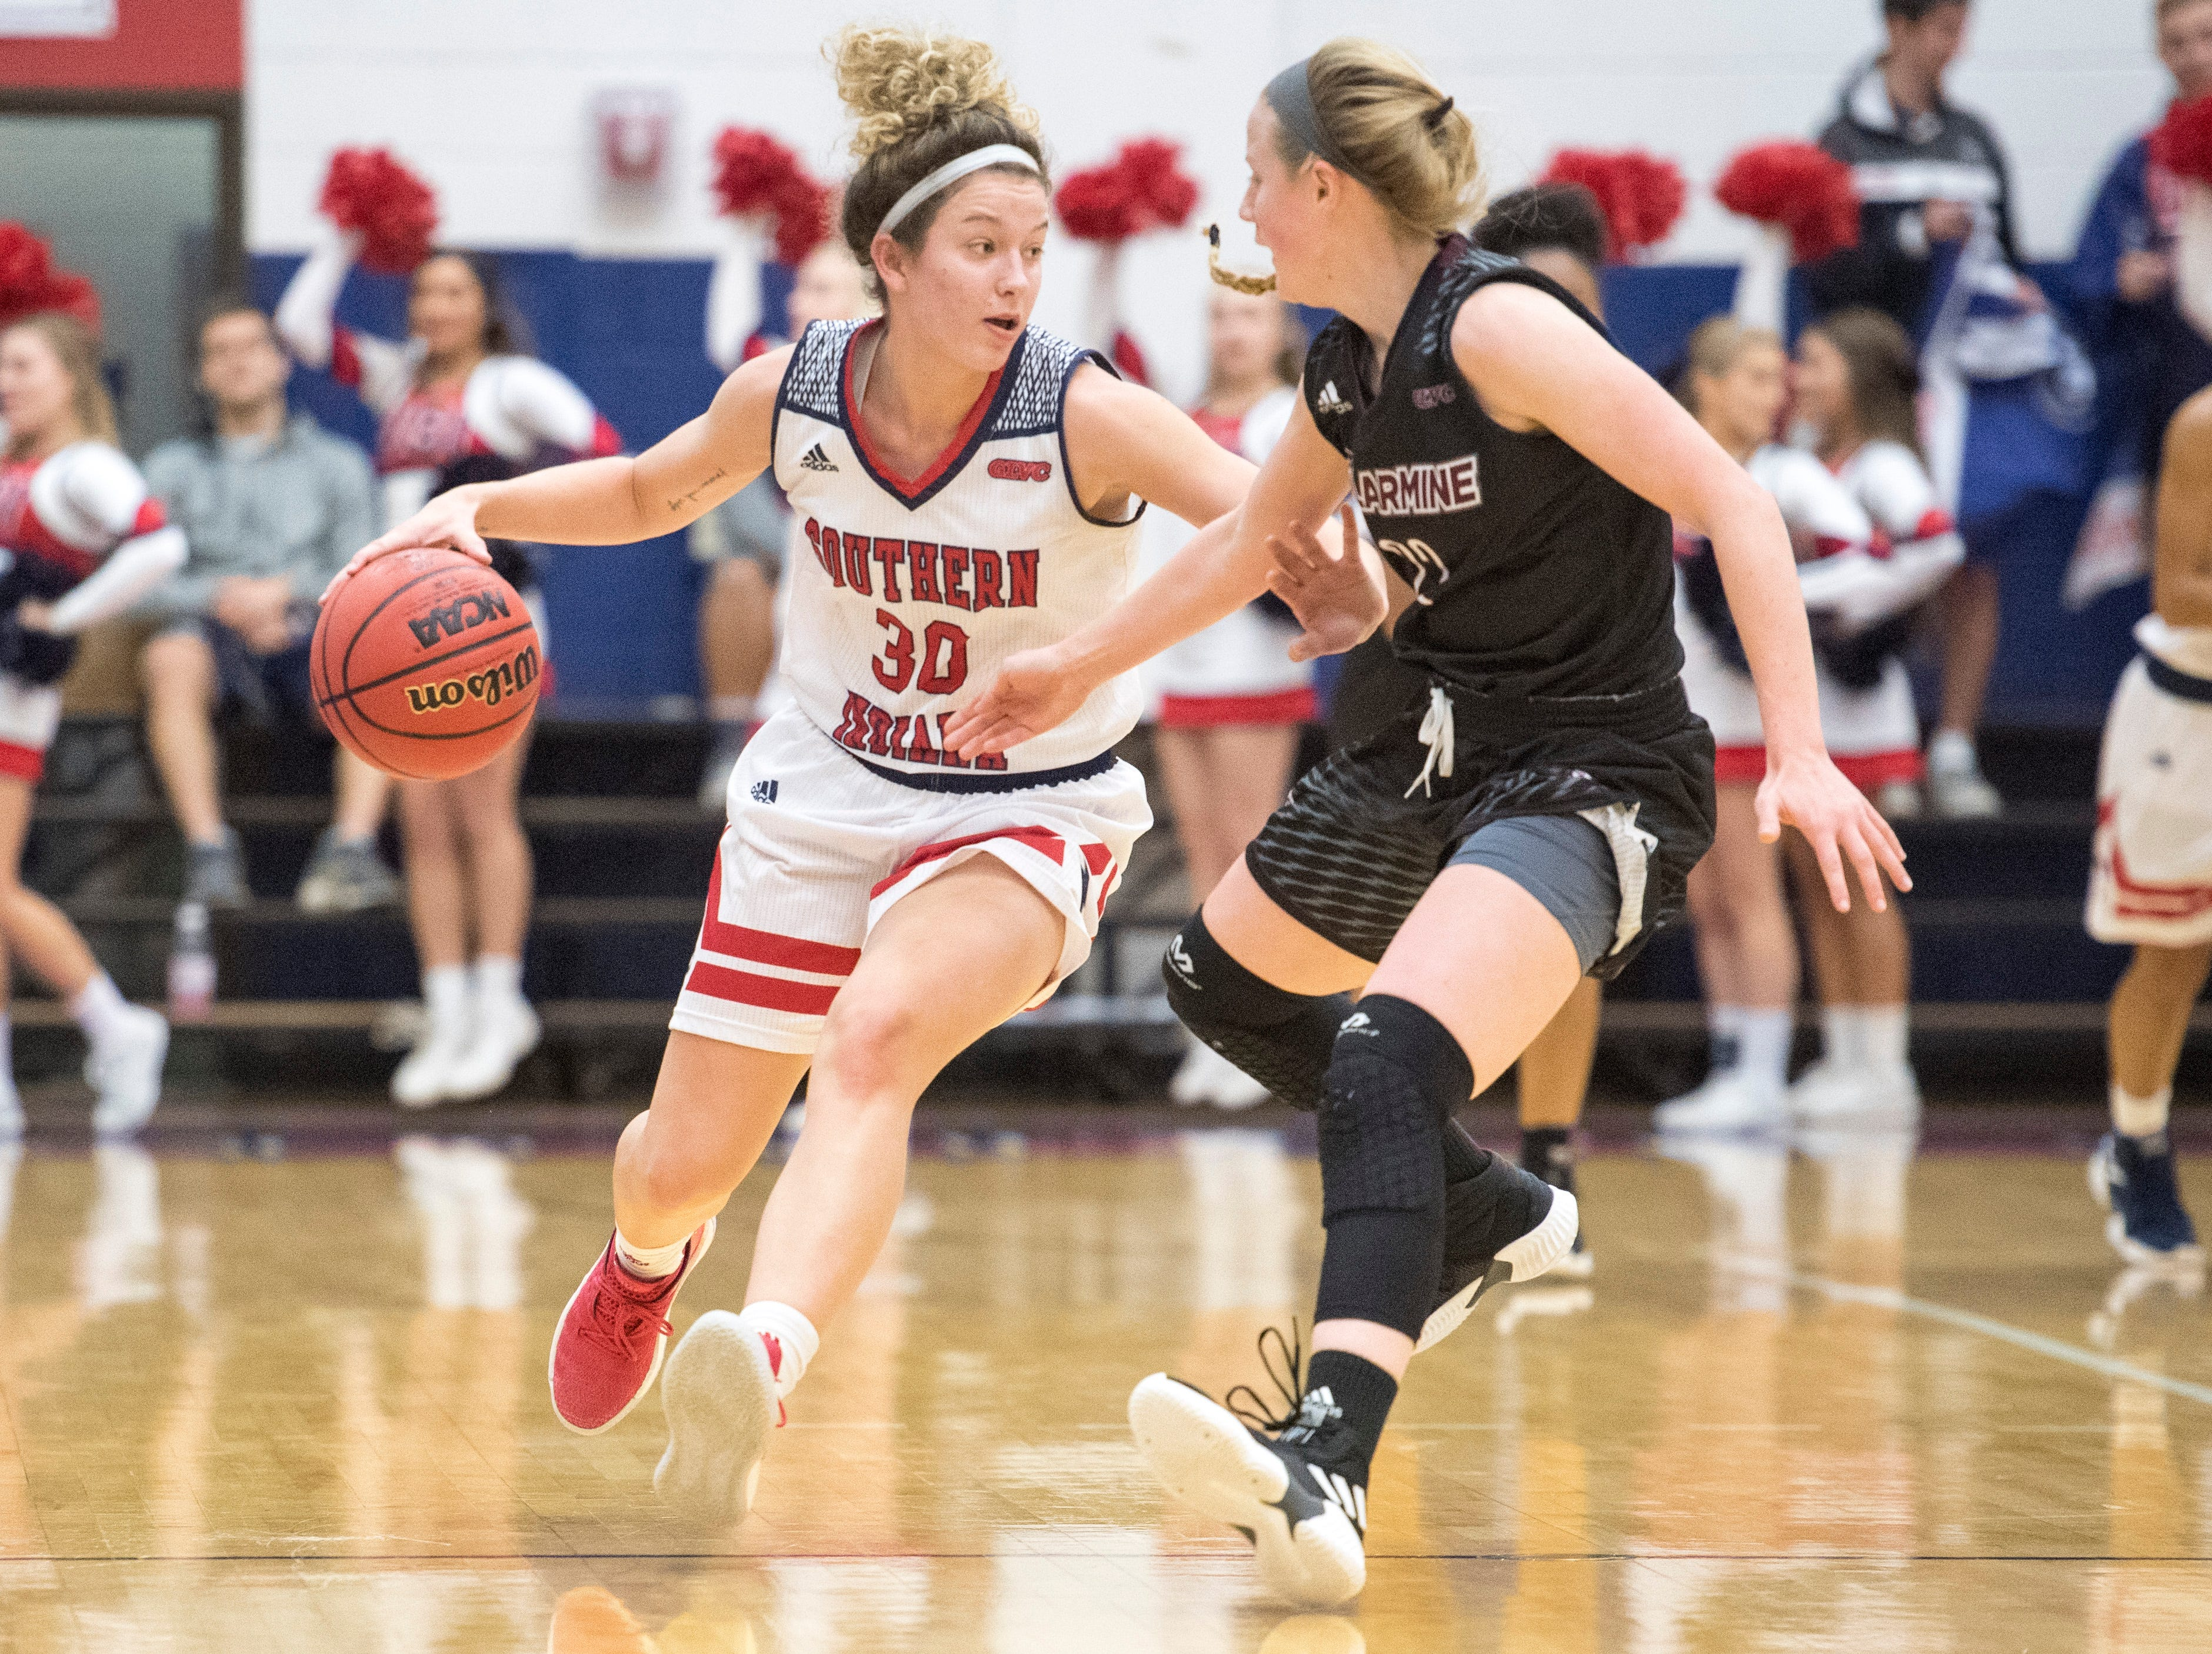 USI's Emma DeHart (30) dribbles the ball during the USI vs Bellarmine game at the PAC Saturday, Dec. 1, 2018.